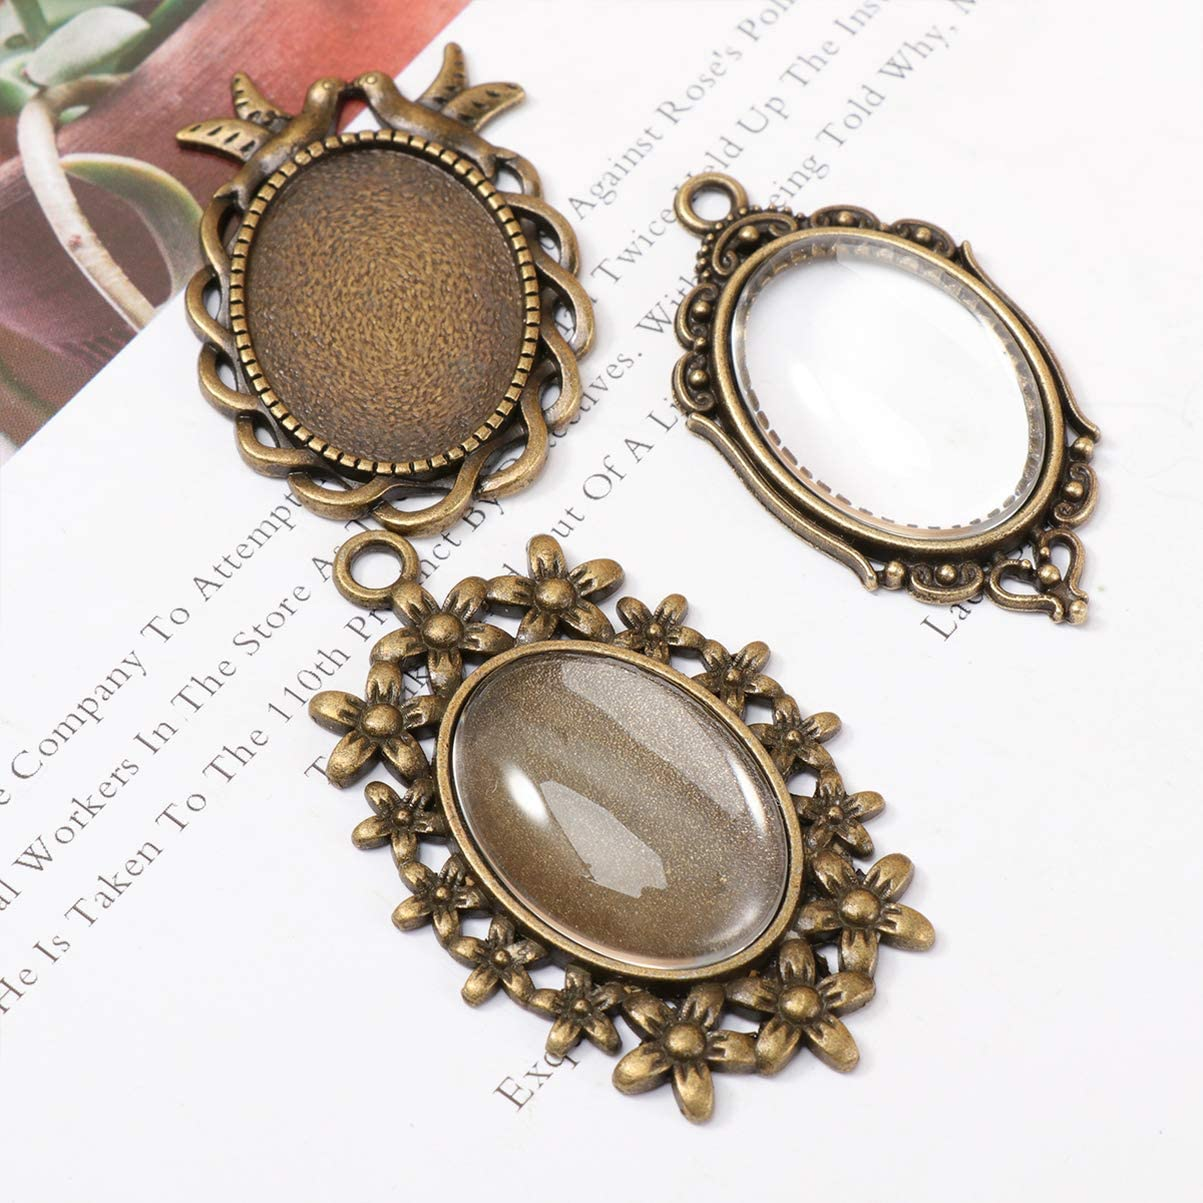 Healifty 12 Sets Antique Blank Bezel Pendant Trays Oval Glass Cabochon Bases DIY Jewelry Making Accessory